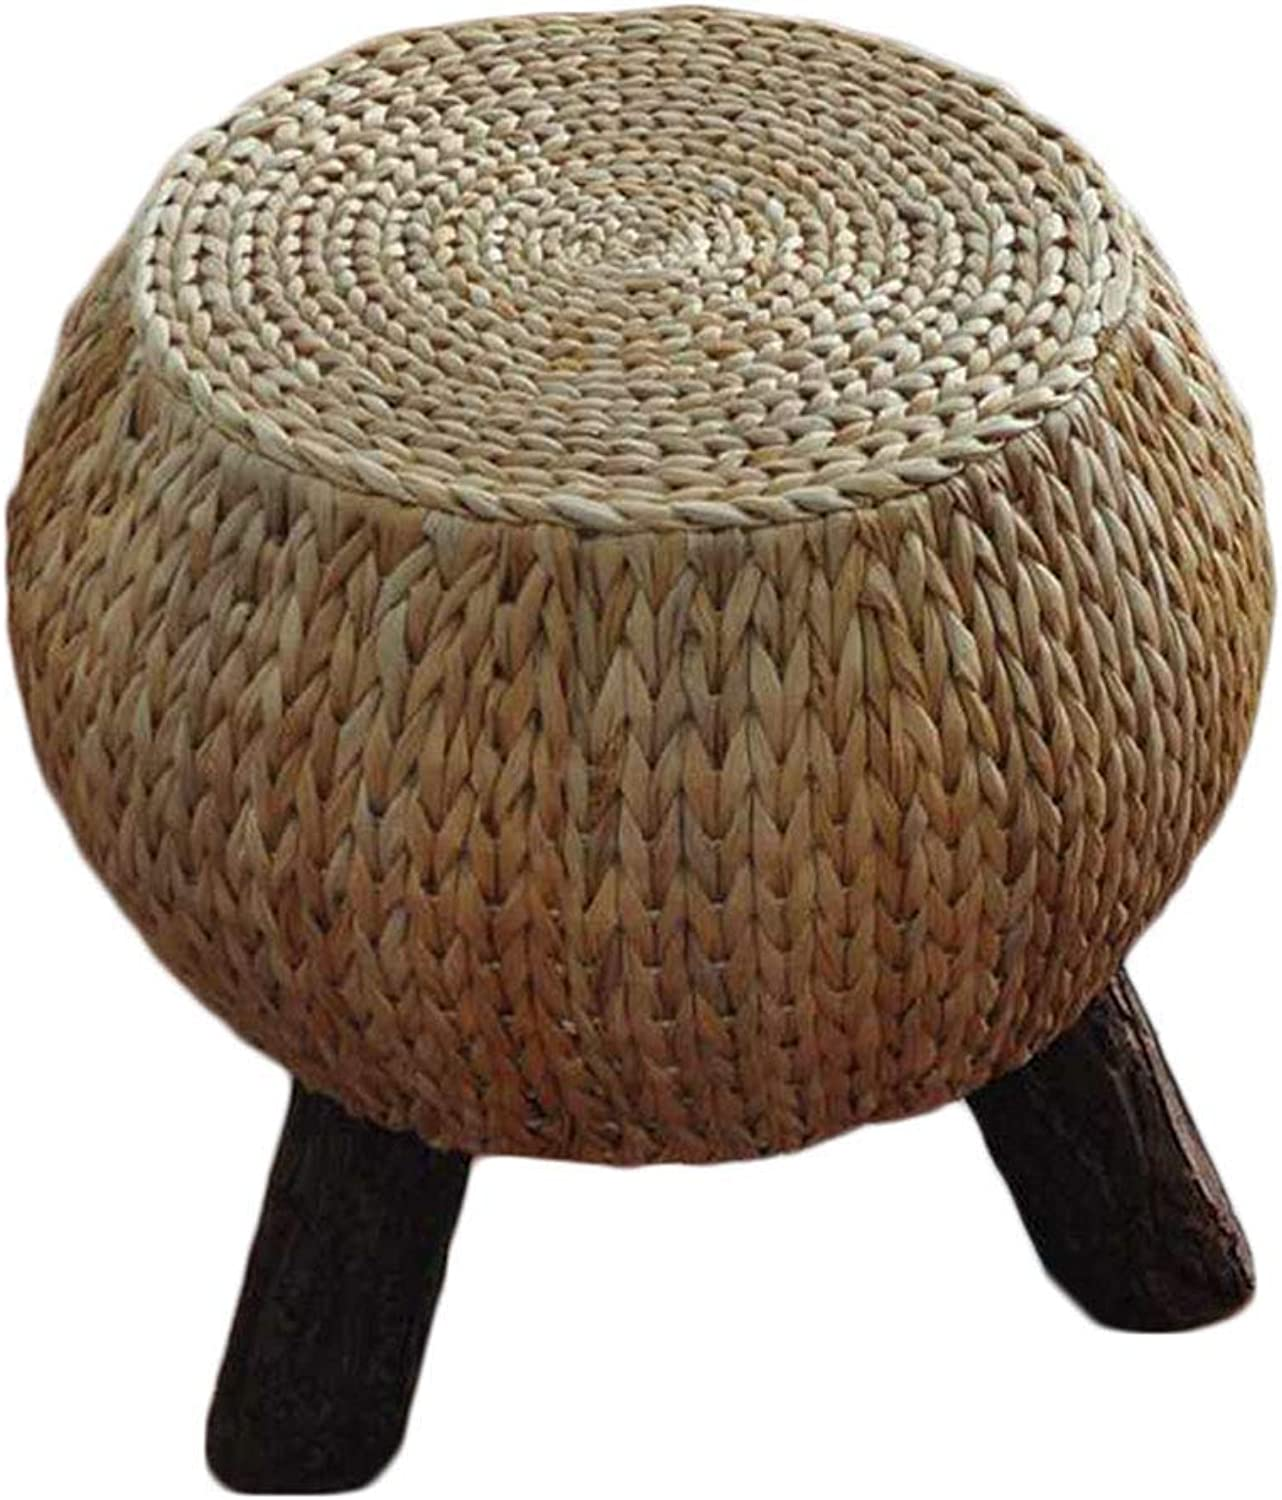 YJLGRYF Household Rattan Chair Stool Round Round Change shoes Stool Multifunction Wooden Foot Rest Stool(11.8x11.8x14.5 Inches)